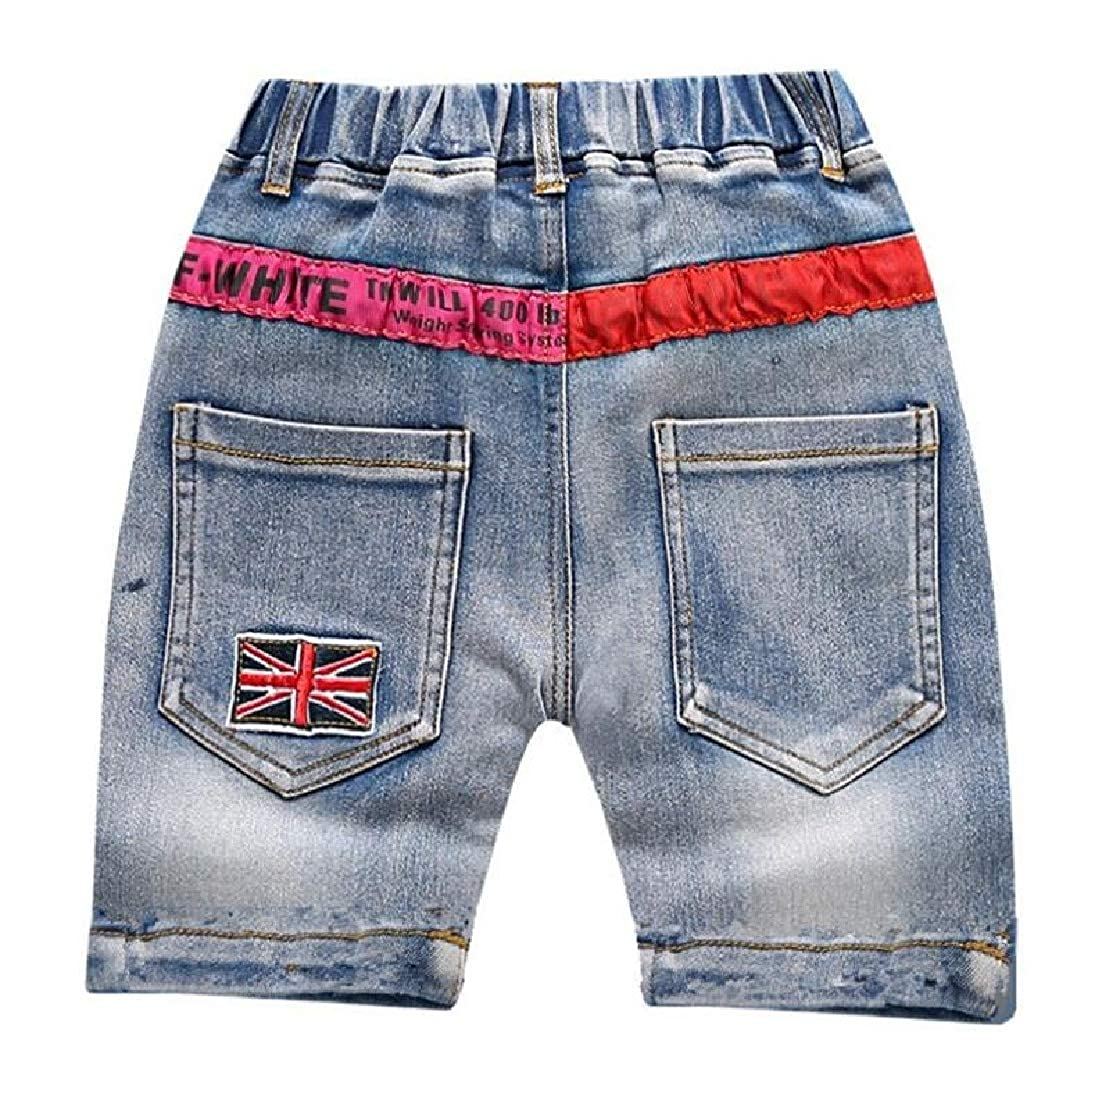 Wofupowga Boys Fashion Cute Jean Striped Summer Denim Short